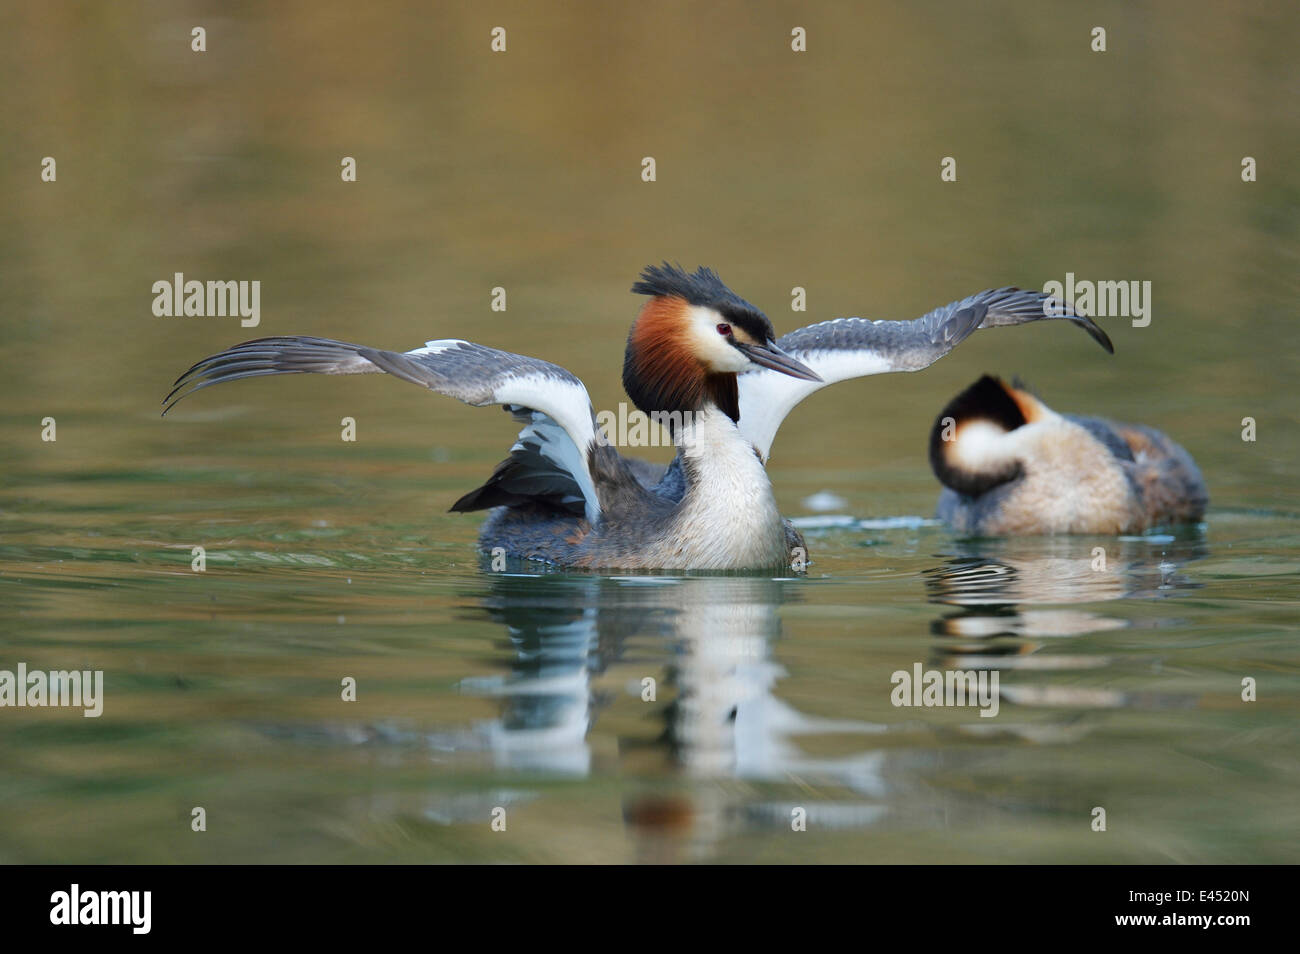 Great Crested Grebe (Podiceps cristatus), shaking its wings, Lake Lucerne, Canton of Lucerne, Switzerland - Stock Image